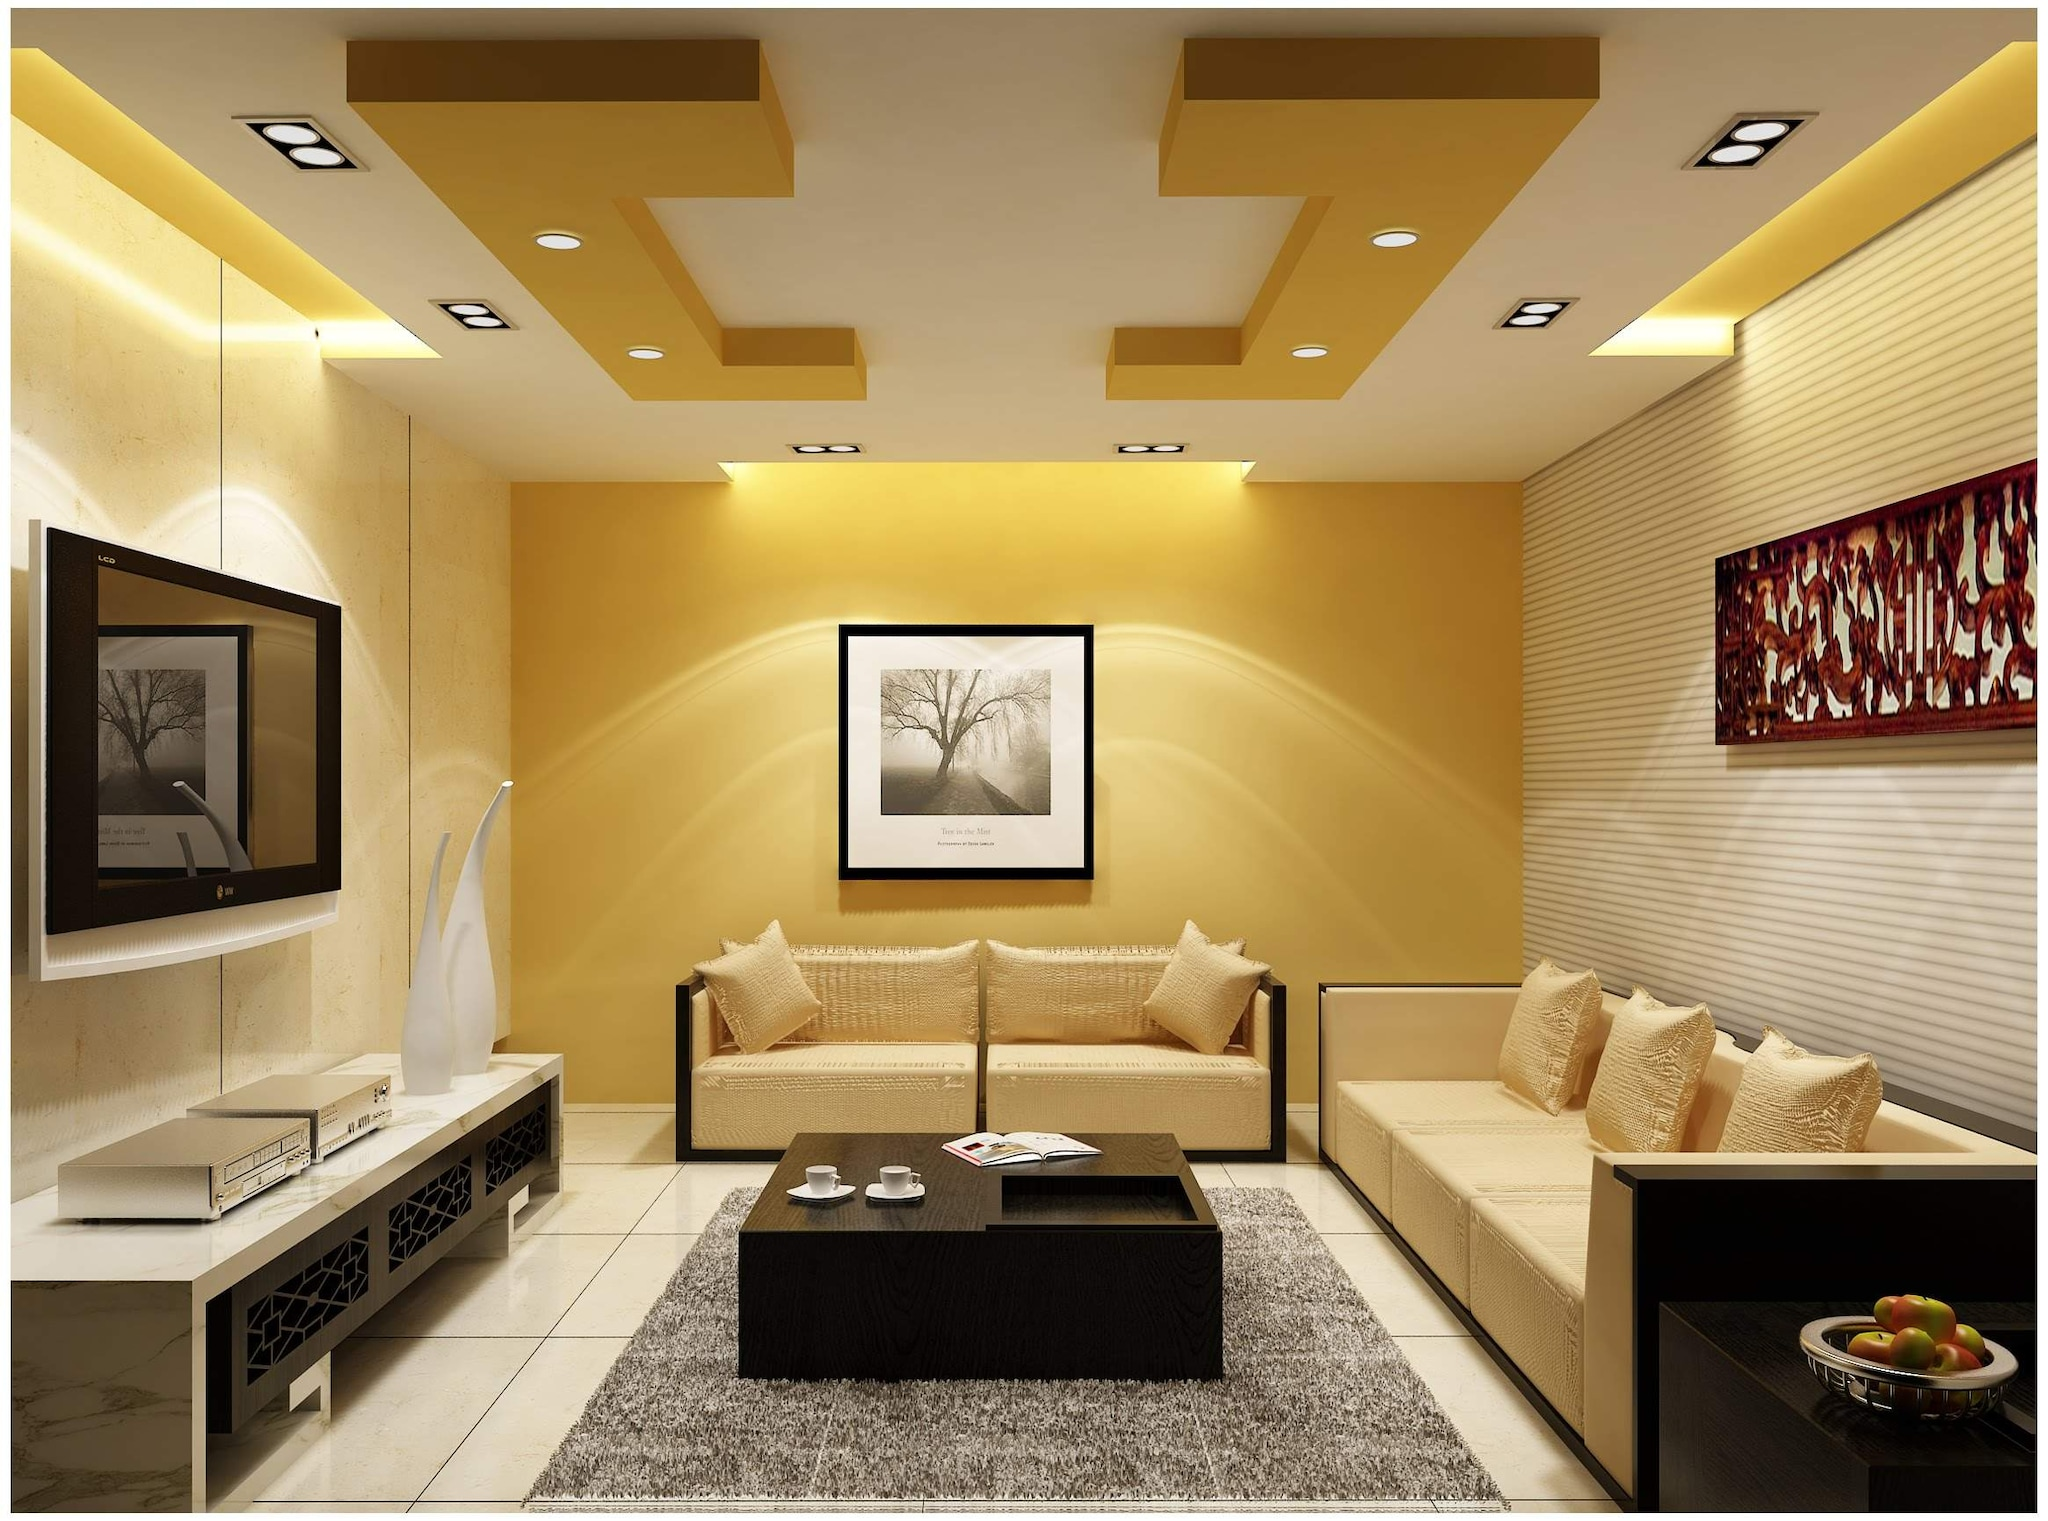 Top 100 Painting Contractors in Nagercoil - Best Painting Services ...